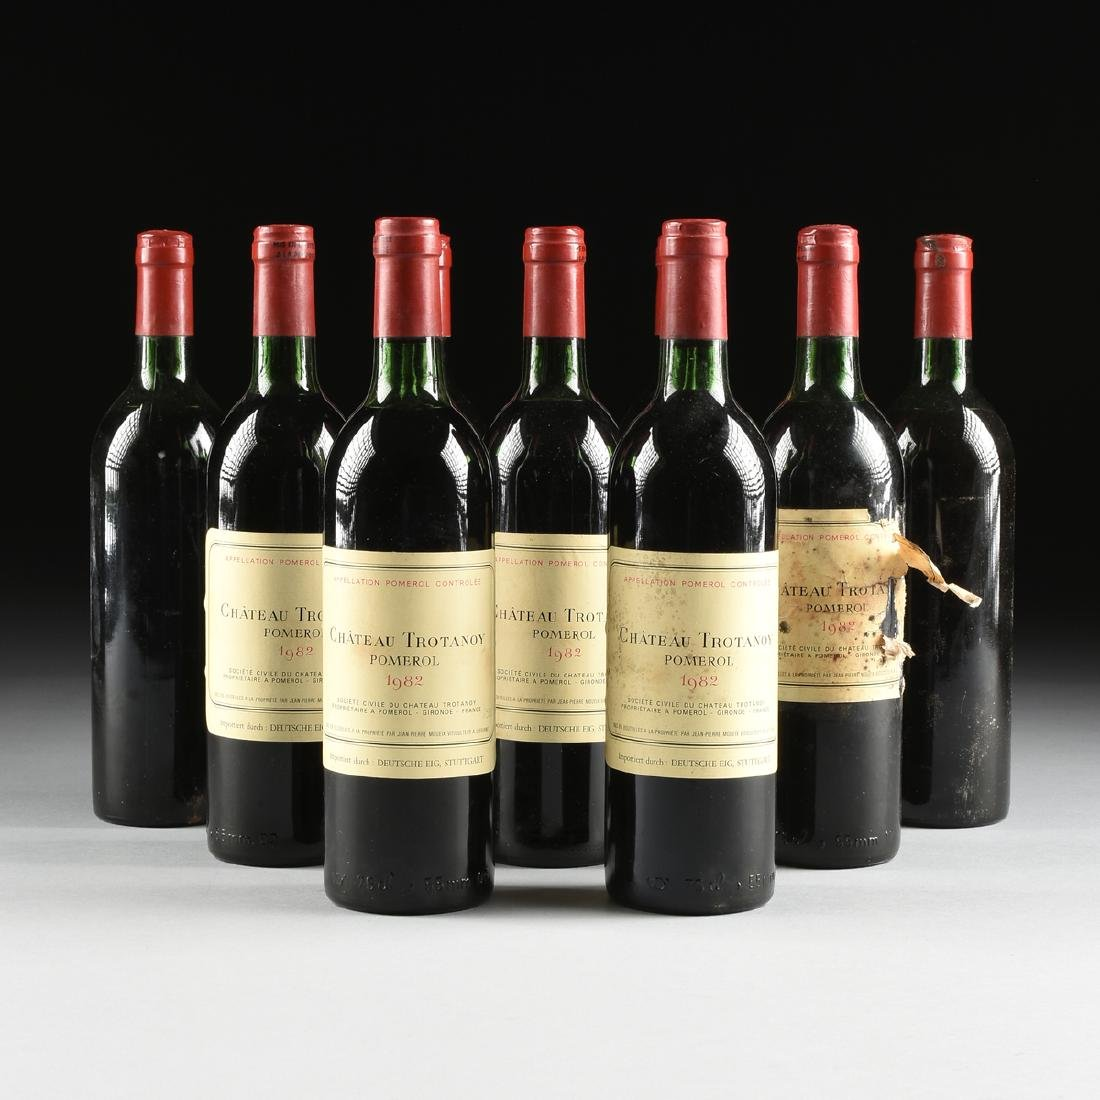 A GROUP OF NINE BOTTLES OF 1982 CHÂTEAU TROTANOY